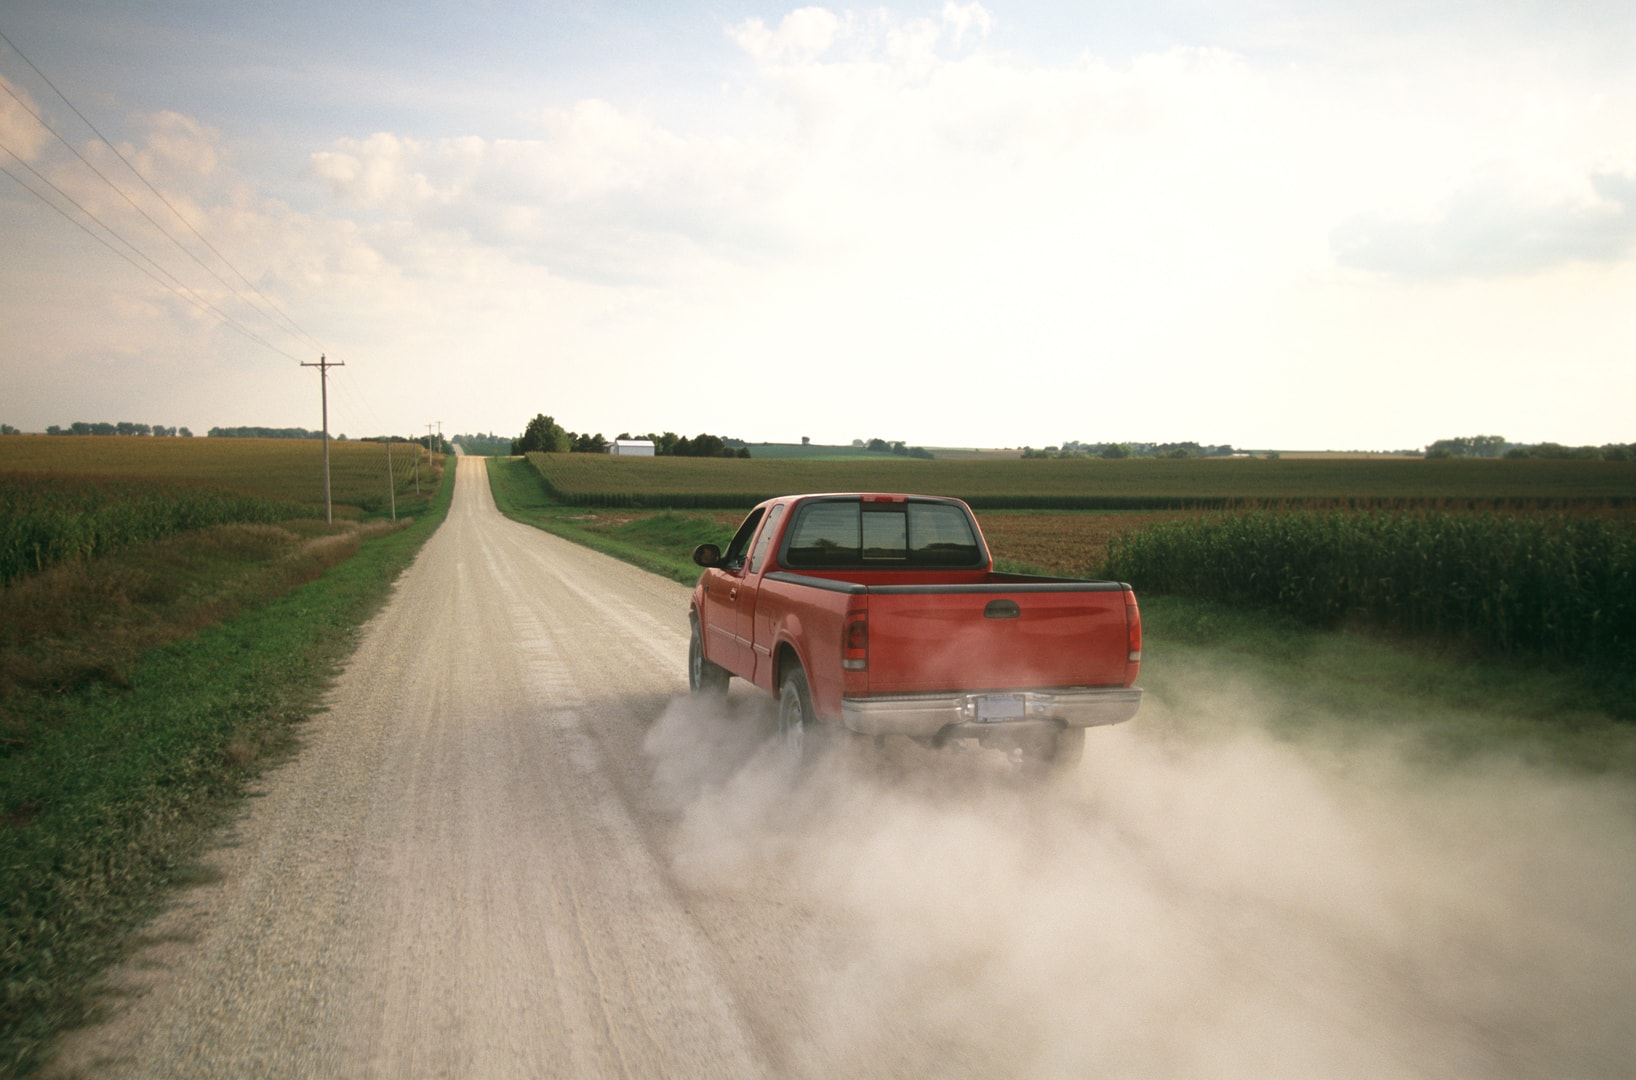 Truck driving down a dusty dirt road in the country.